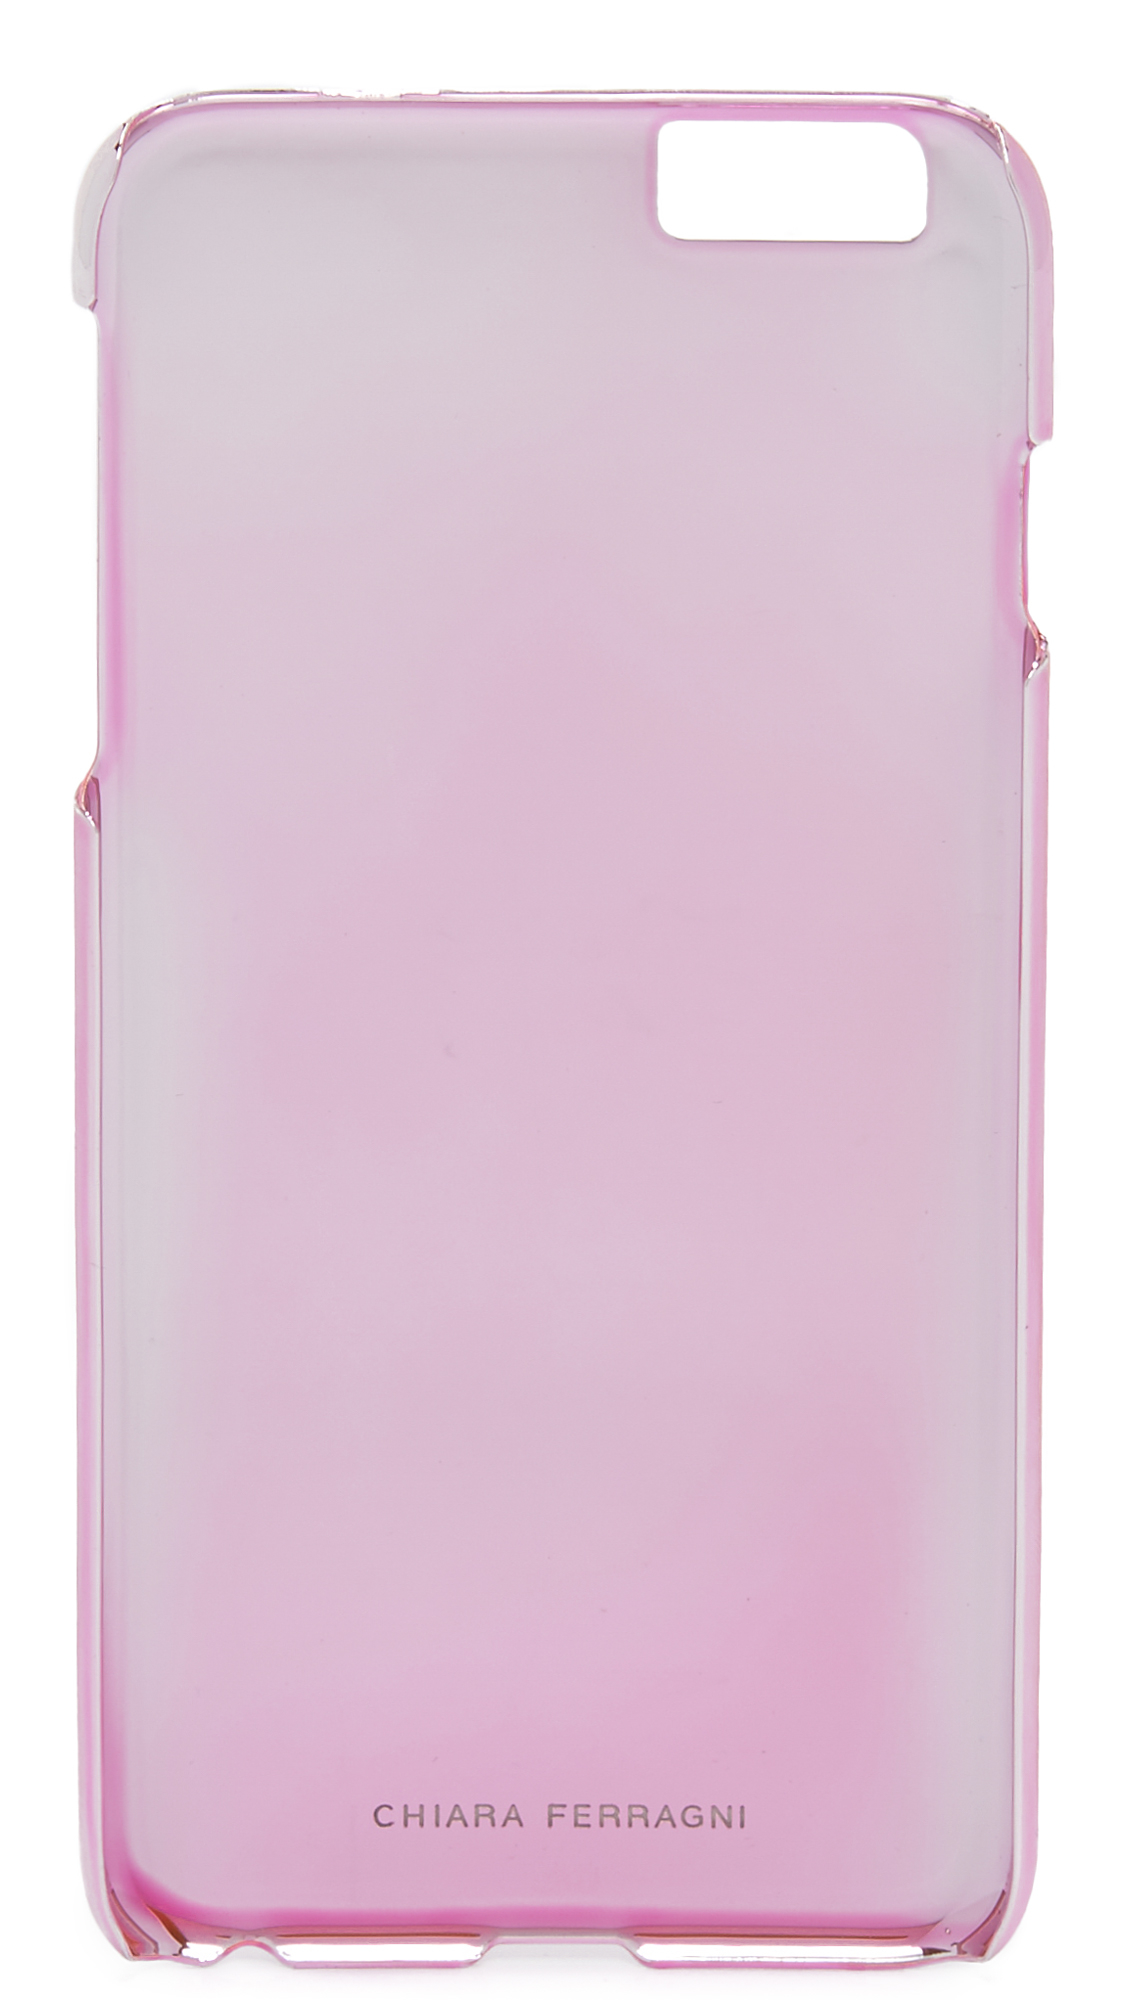 chiara ferragni 39 flirting 39 iphone 6 case in pink lyst. Black Bedroom Furniture Sets. Home Design Ideas